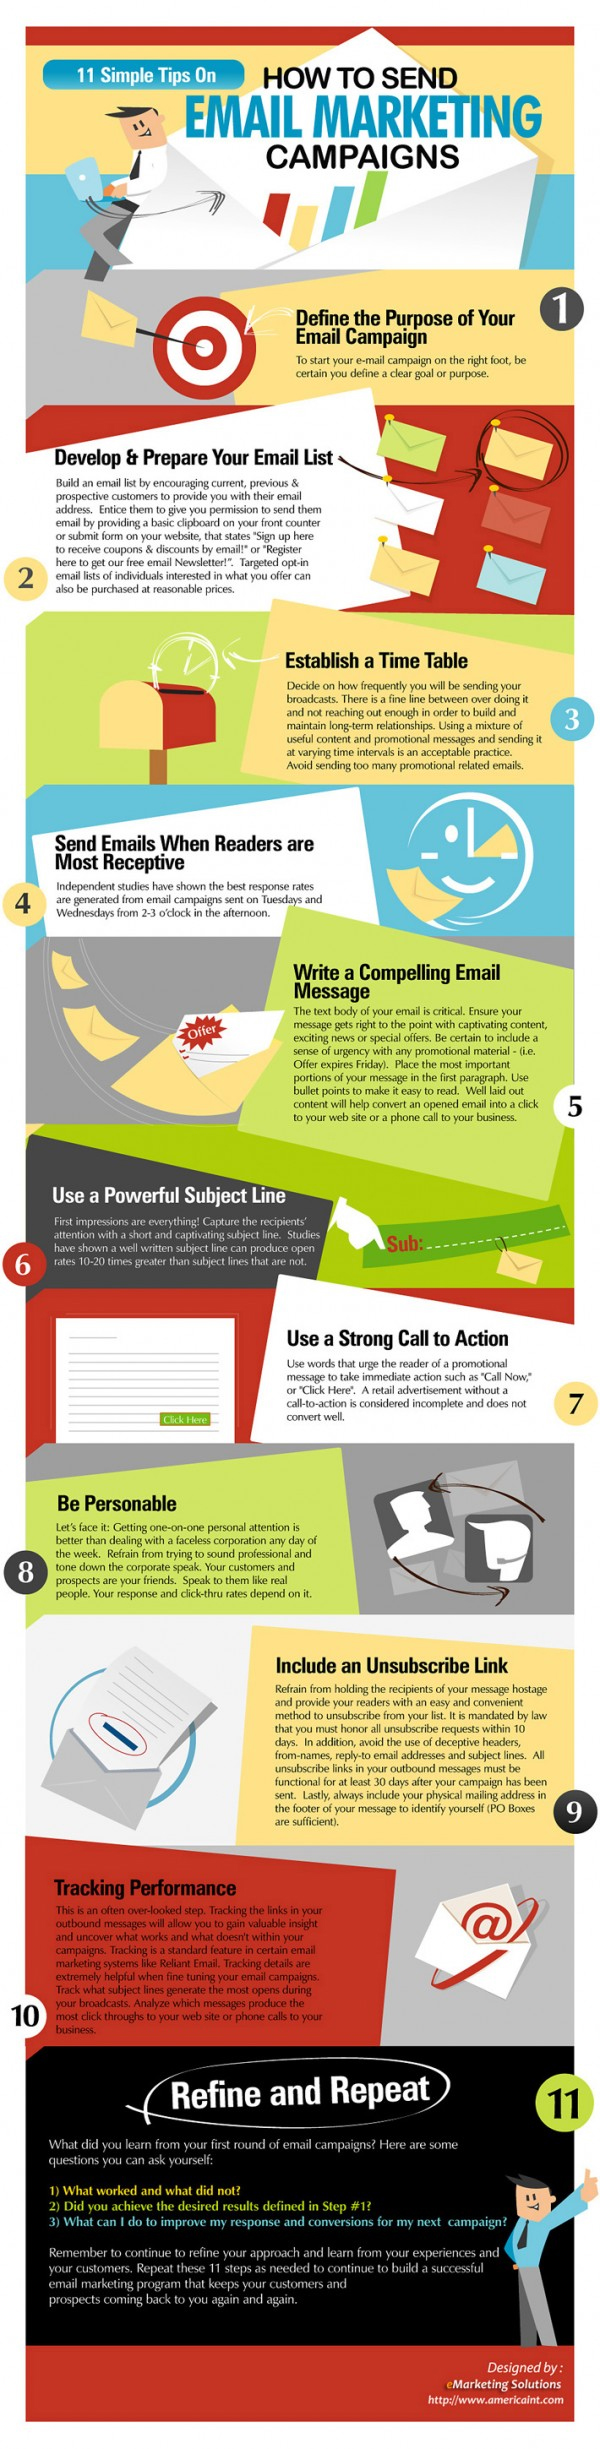 Source:  https://blog.red-website-design.co.uk/2014/10/06/11-simple-tips-to-create-the-perfect-email-marketing-campaign/